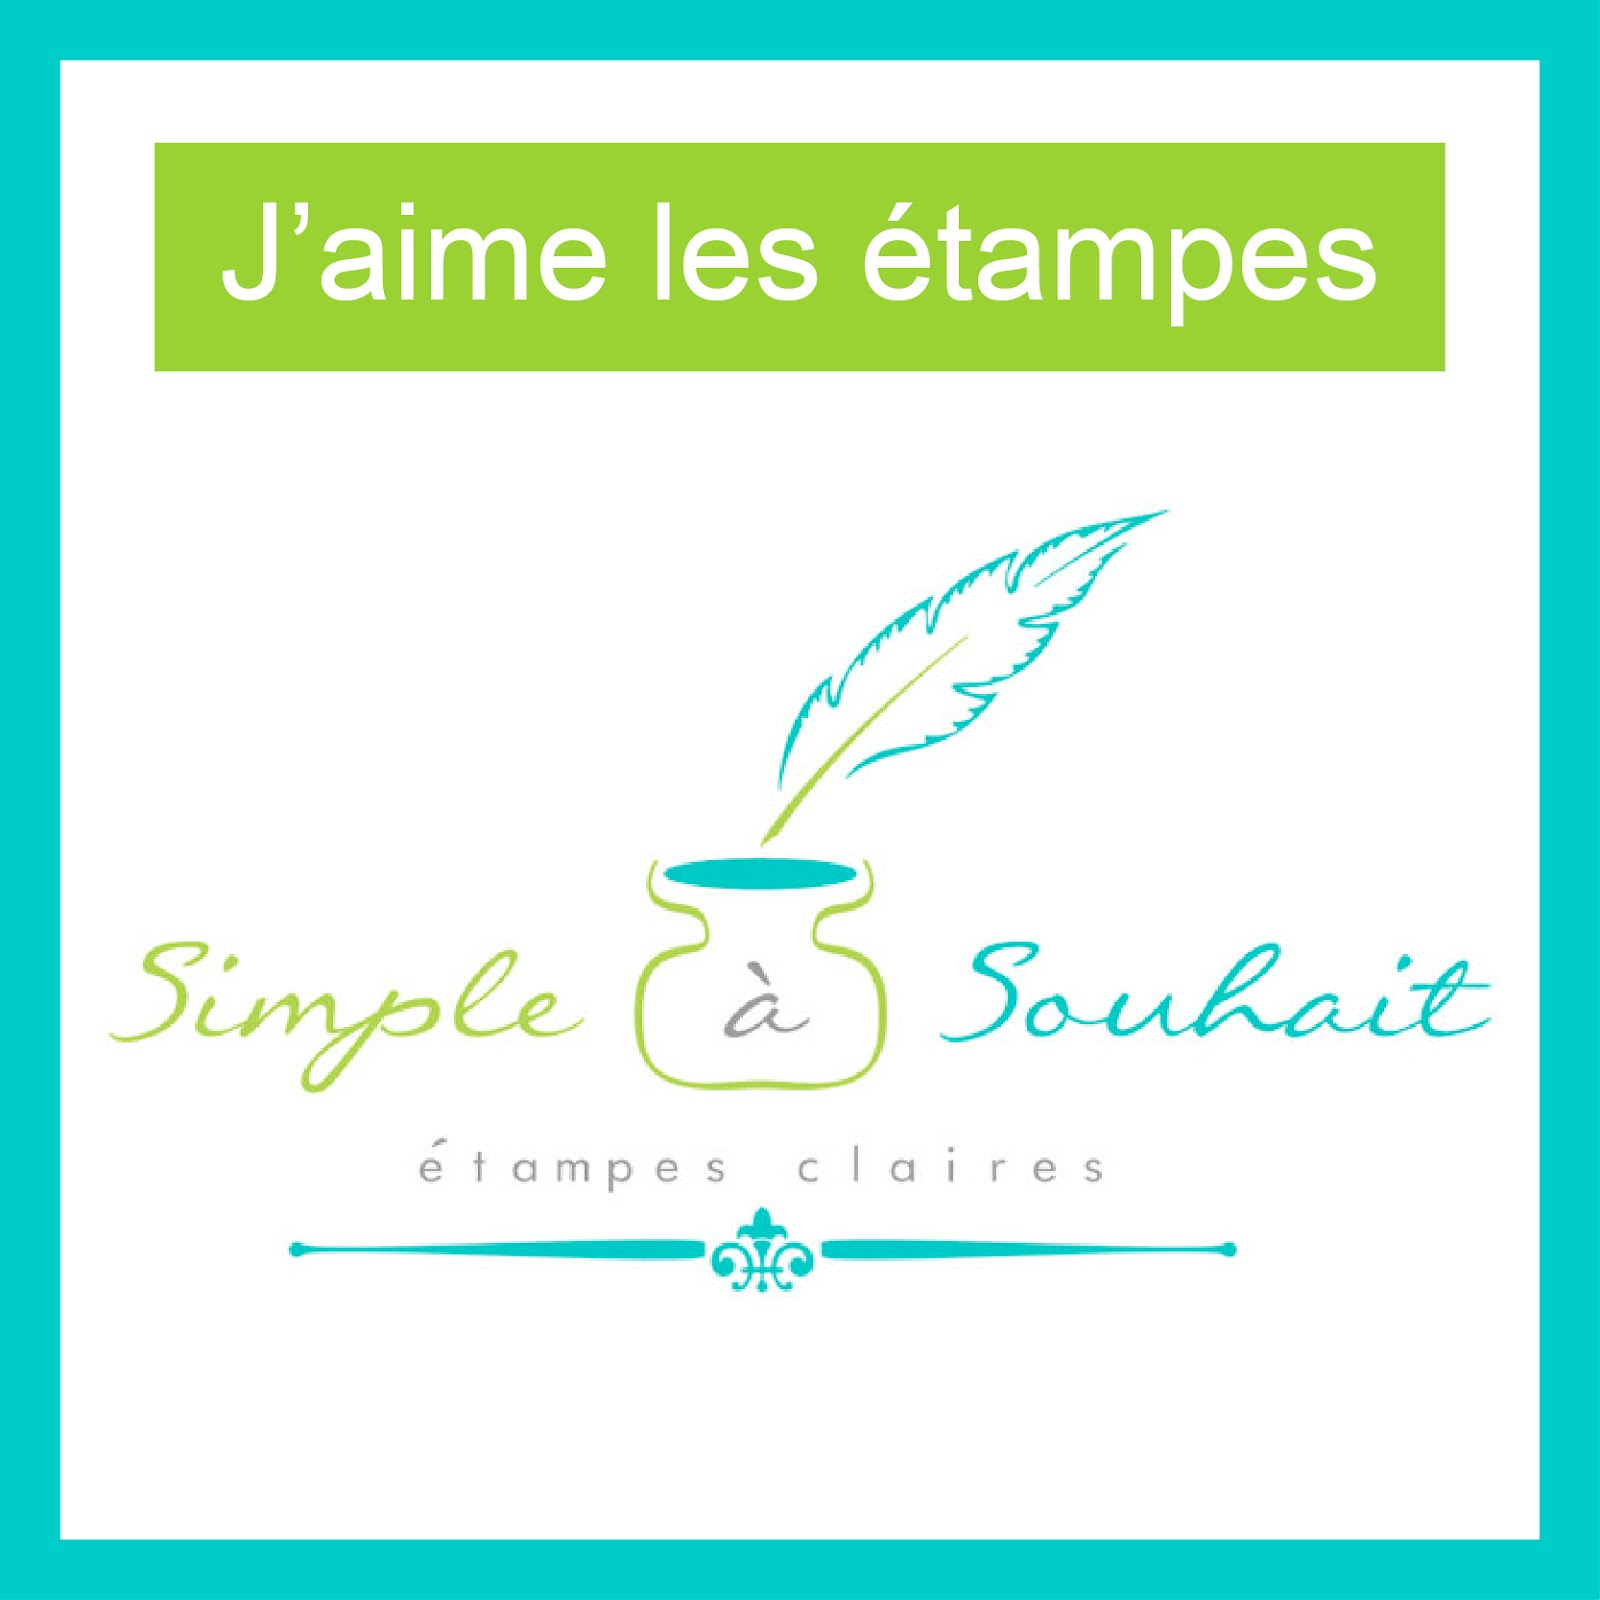 SIMPLE À SOUHAIT